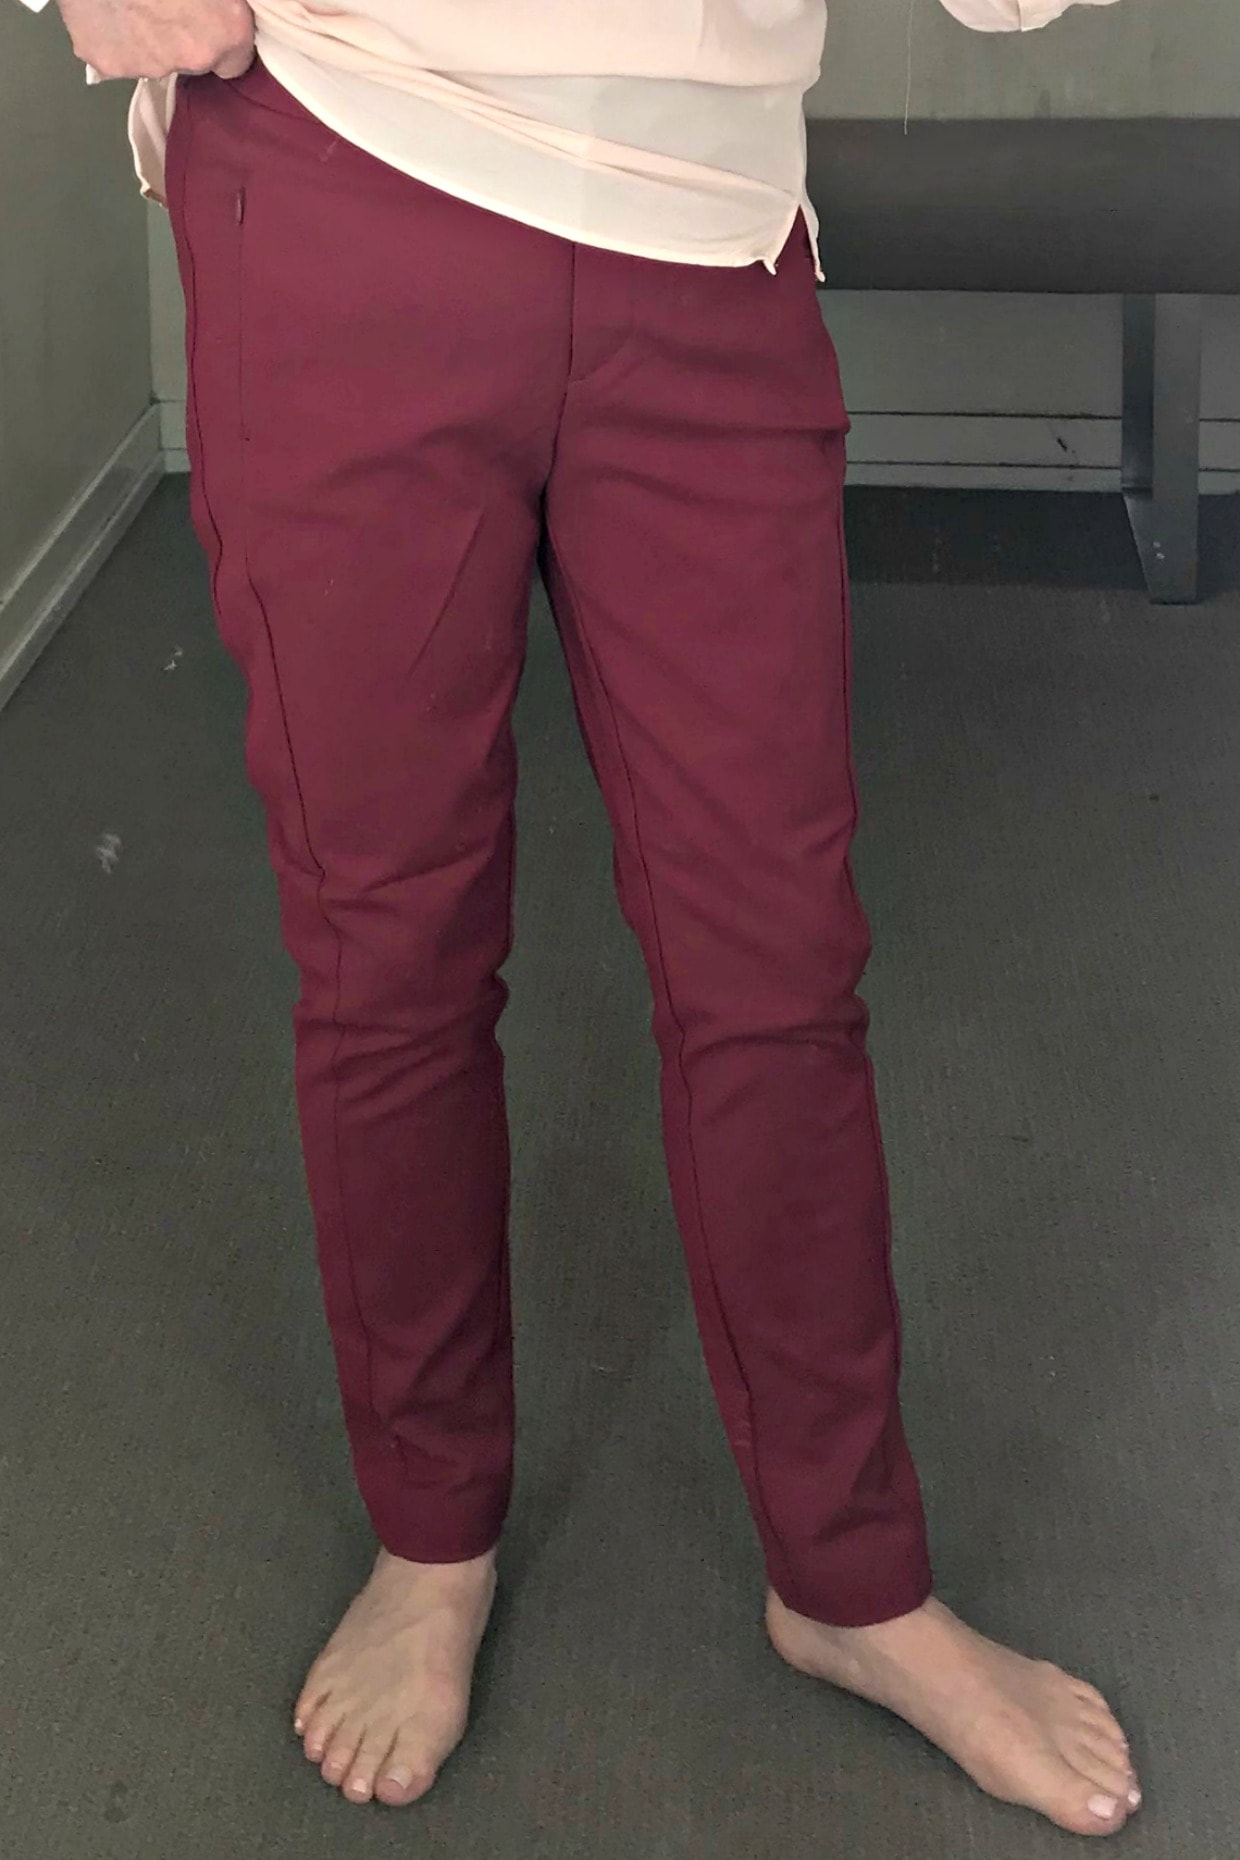 red high rise skinny pants from Loft